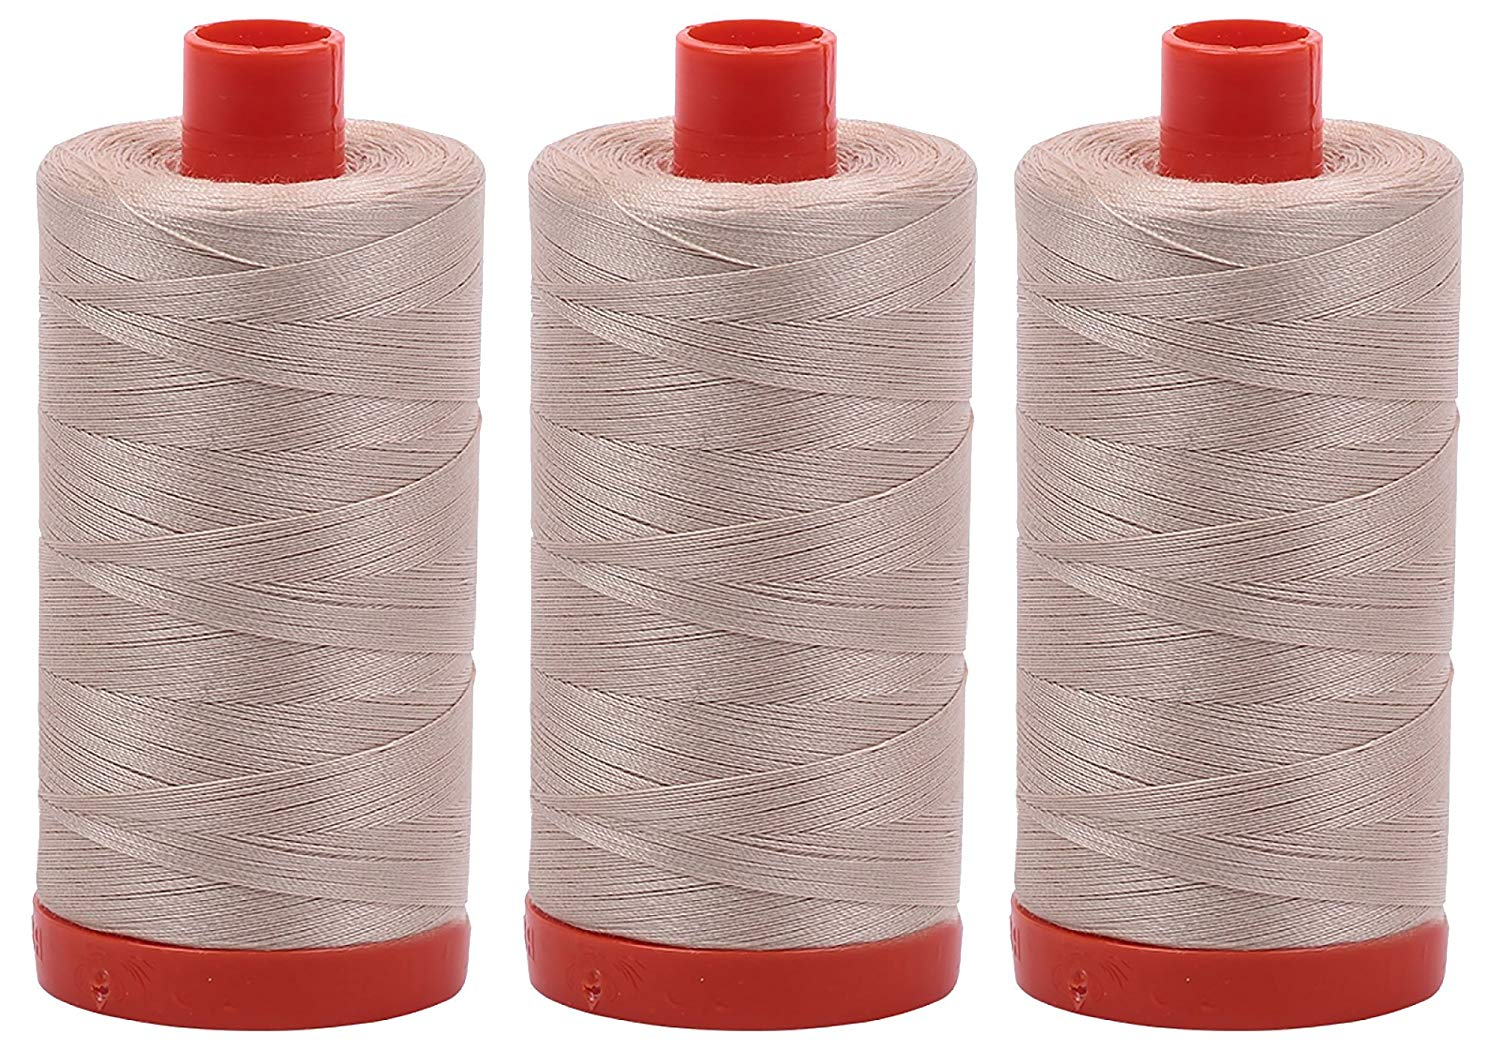 Aurifil Mako 50 wt Cotton Thread - Ermine (2312) - Bundle of 3